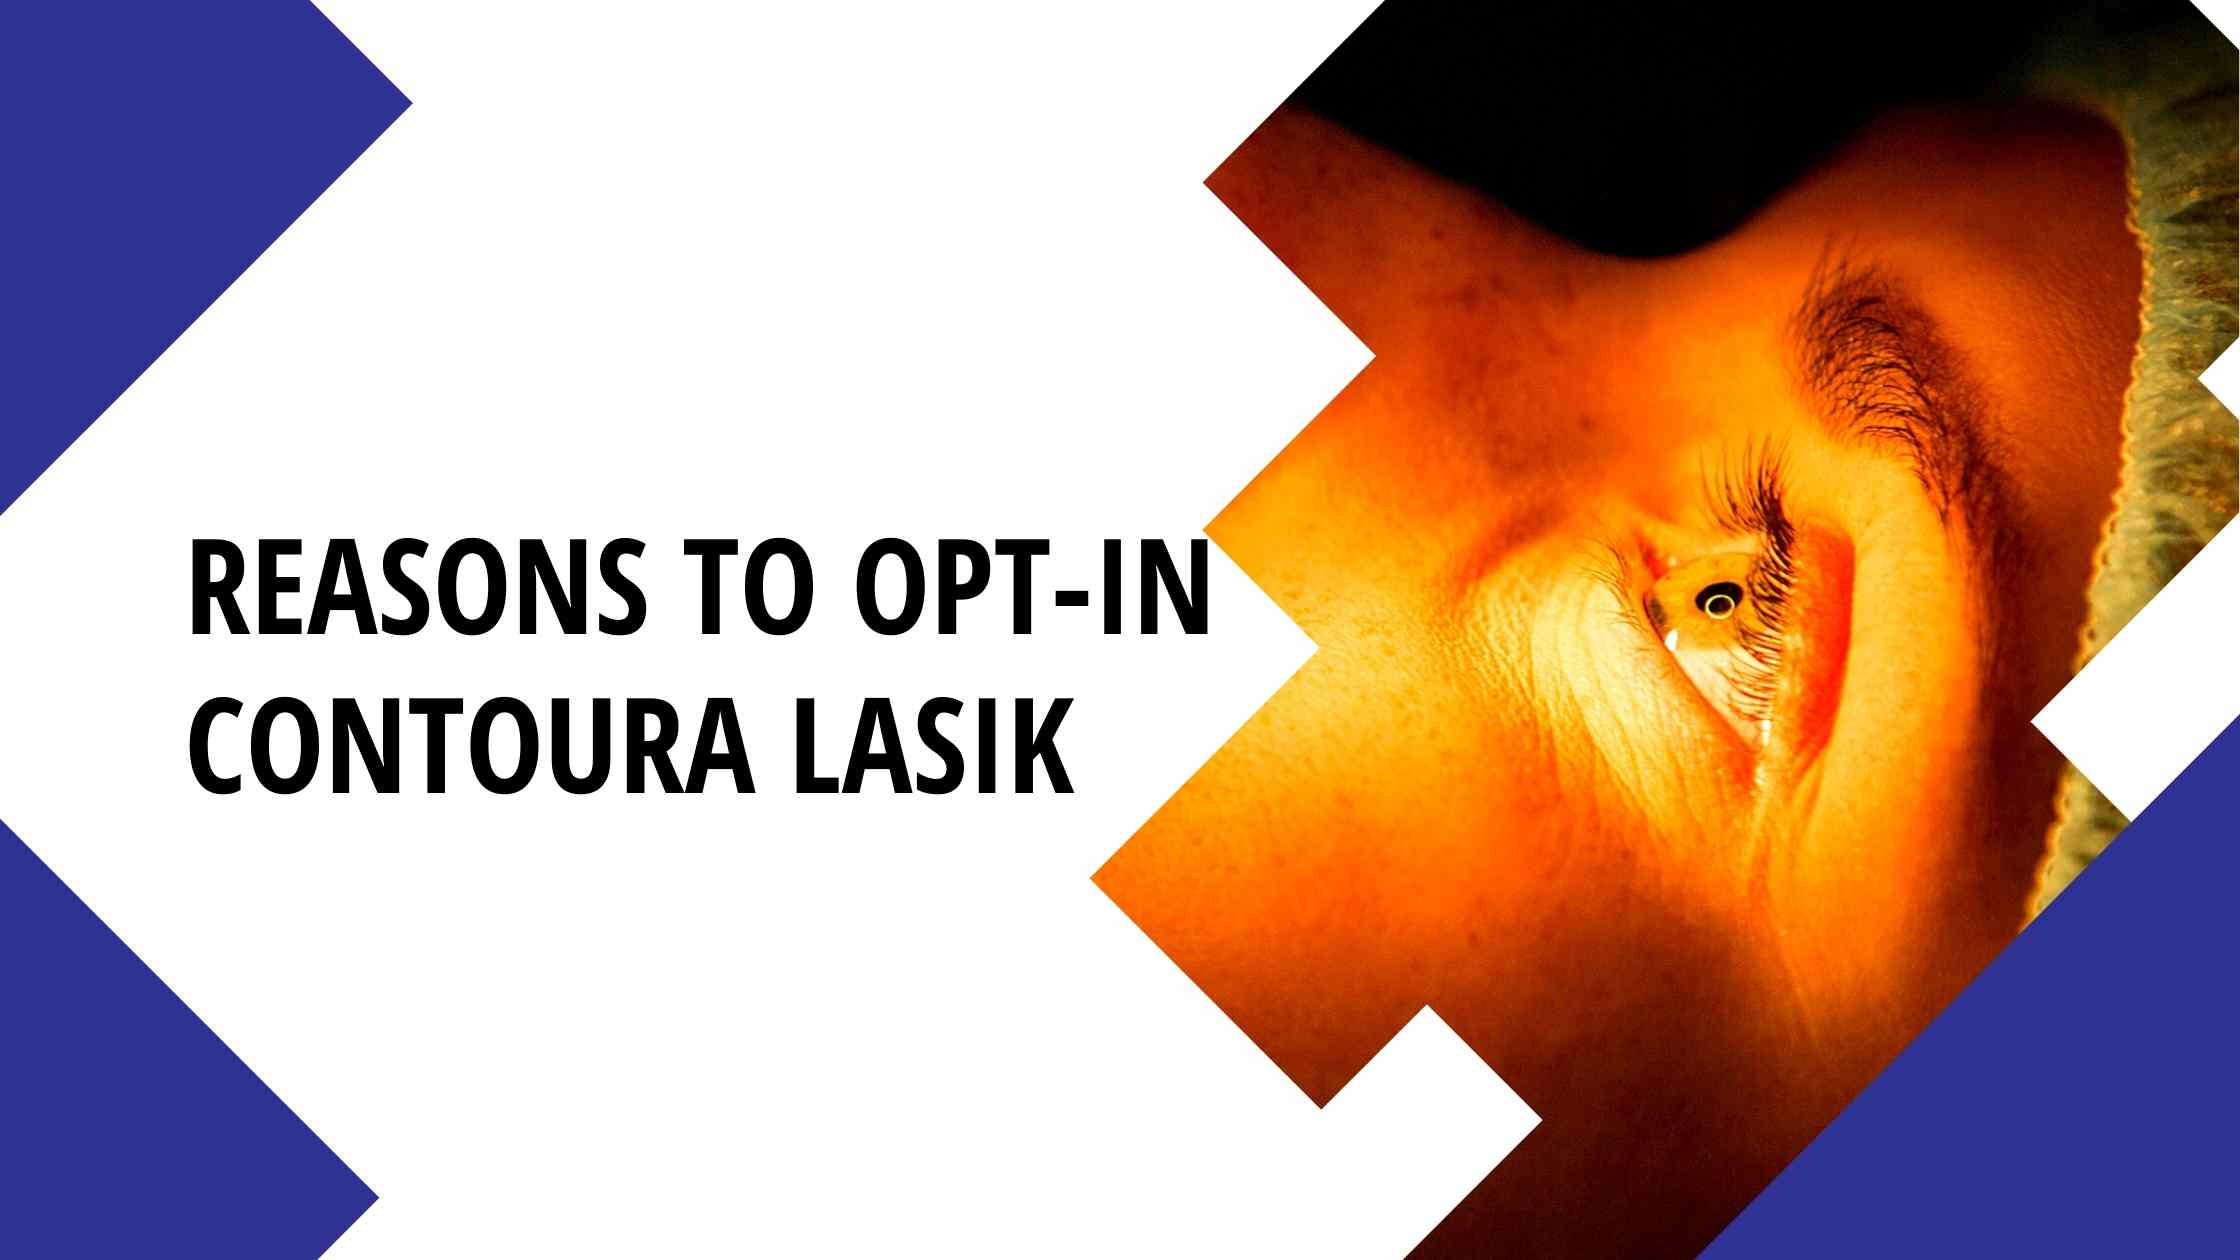 Reasons to opt-in Contoura Lasik